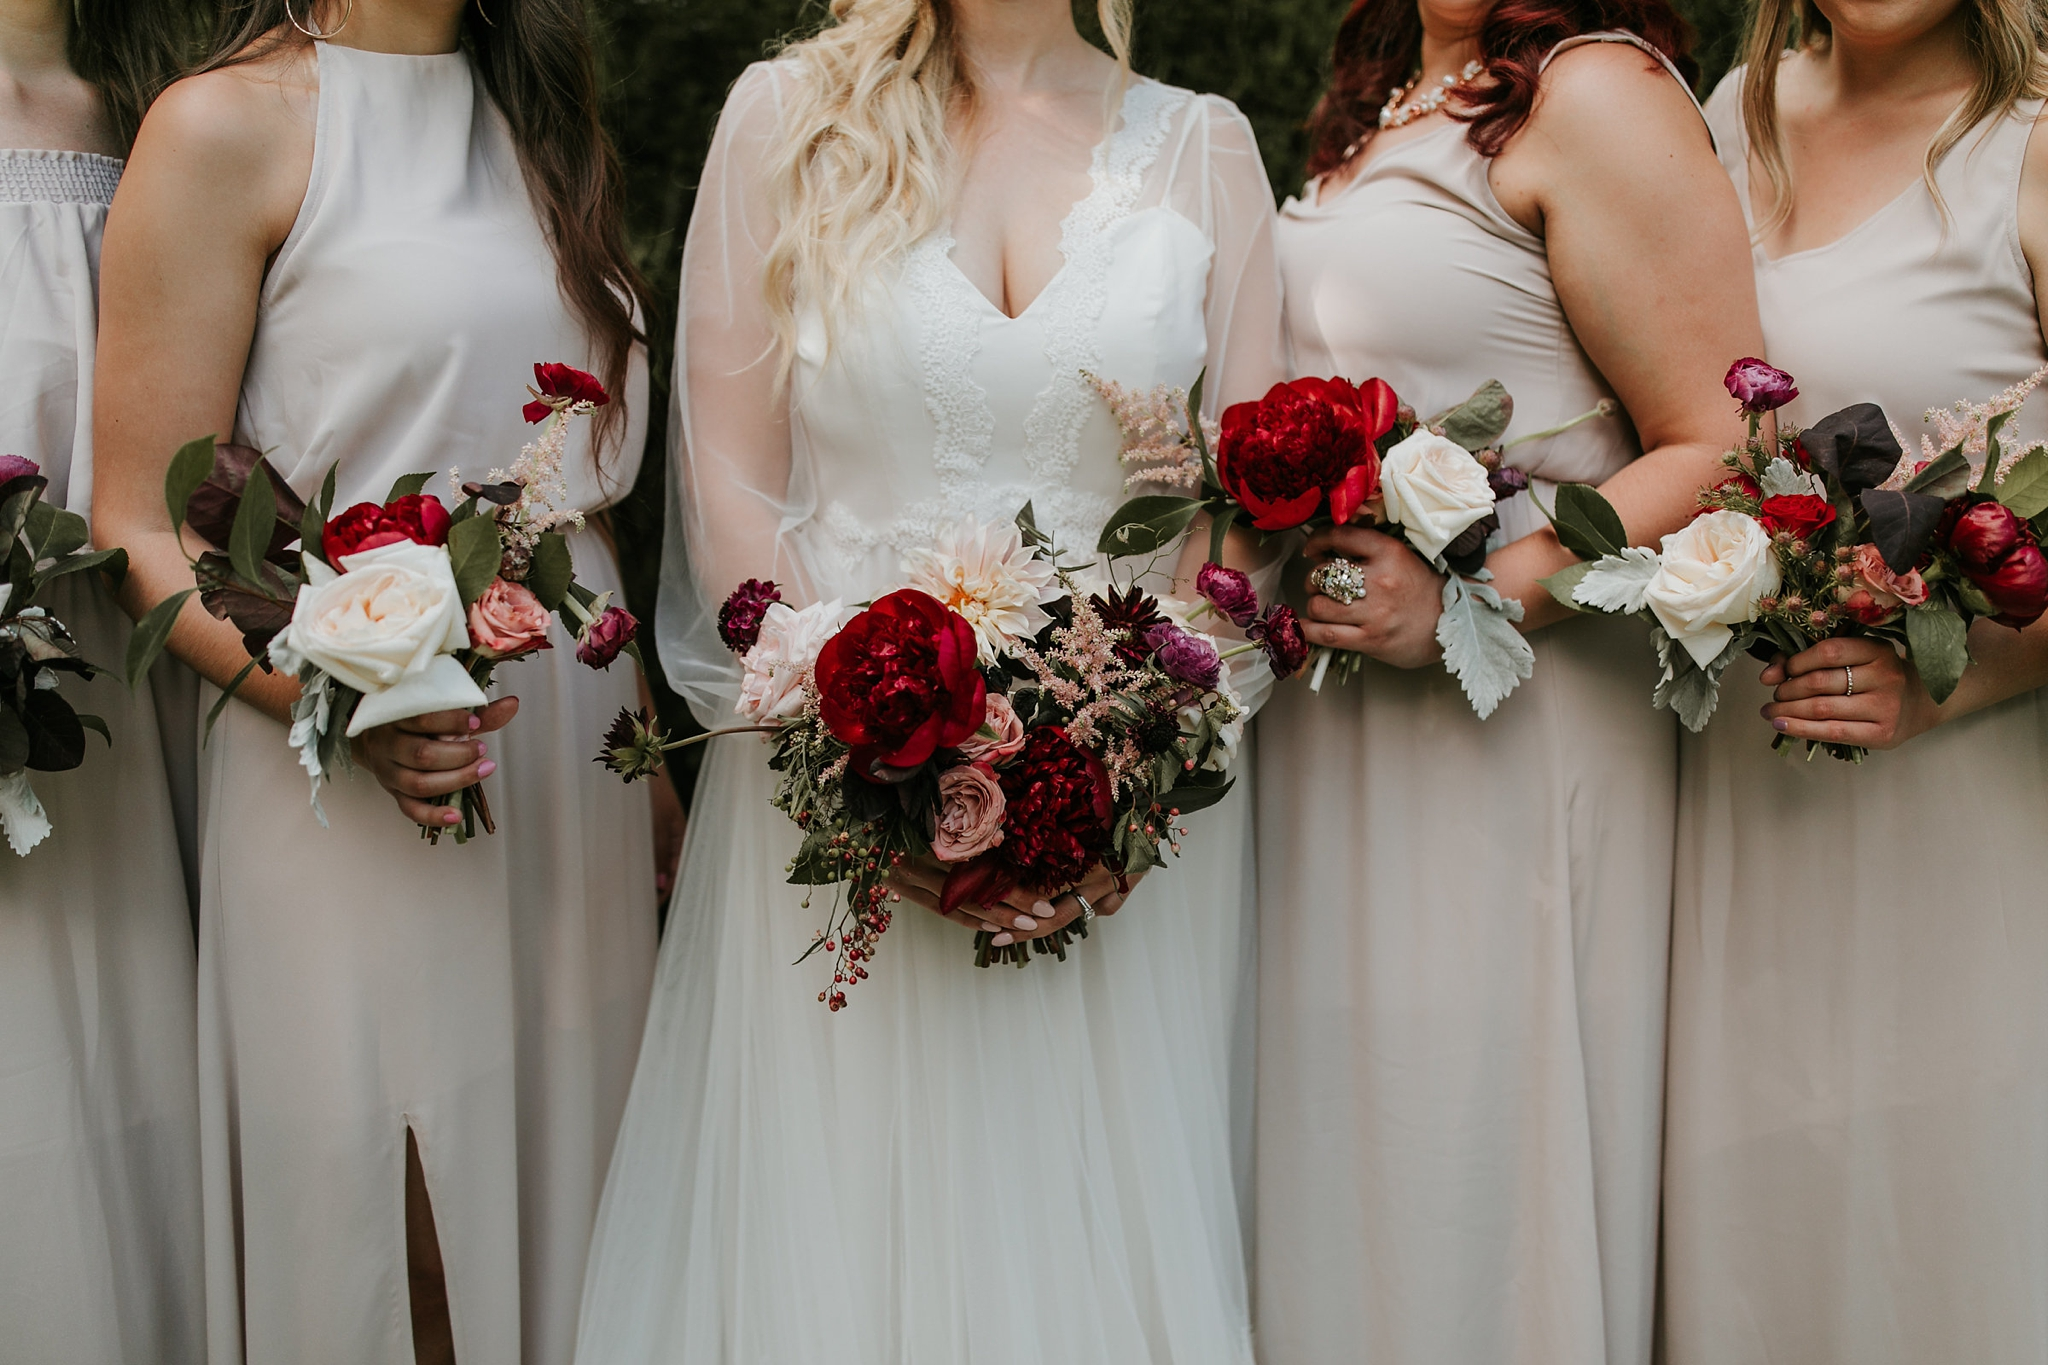 Alicia+lucia+photography+-+albuquerque+wedding+photographer+-+santa+fe+wedding+photography+-+new+mexico+wedding+photographer+-+new+mexico+wedding+-+new+mexico+wedding+-+colorado+wedding+-+bridesmaids+-+bridesmaid+style_0033.jpg